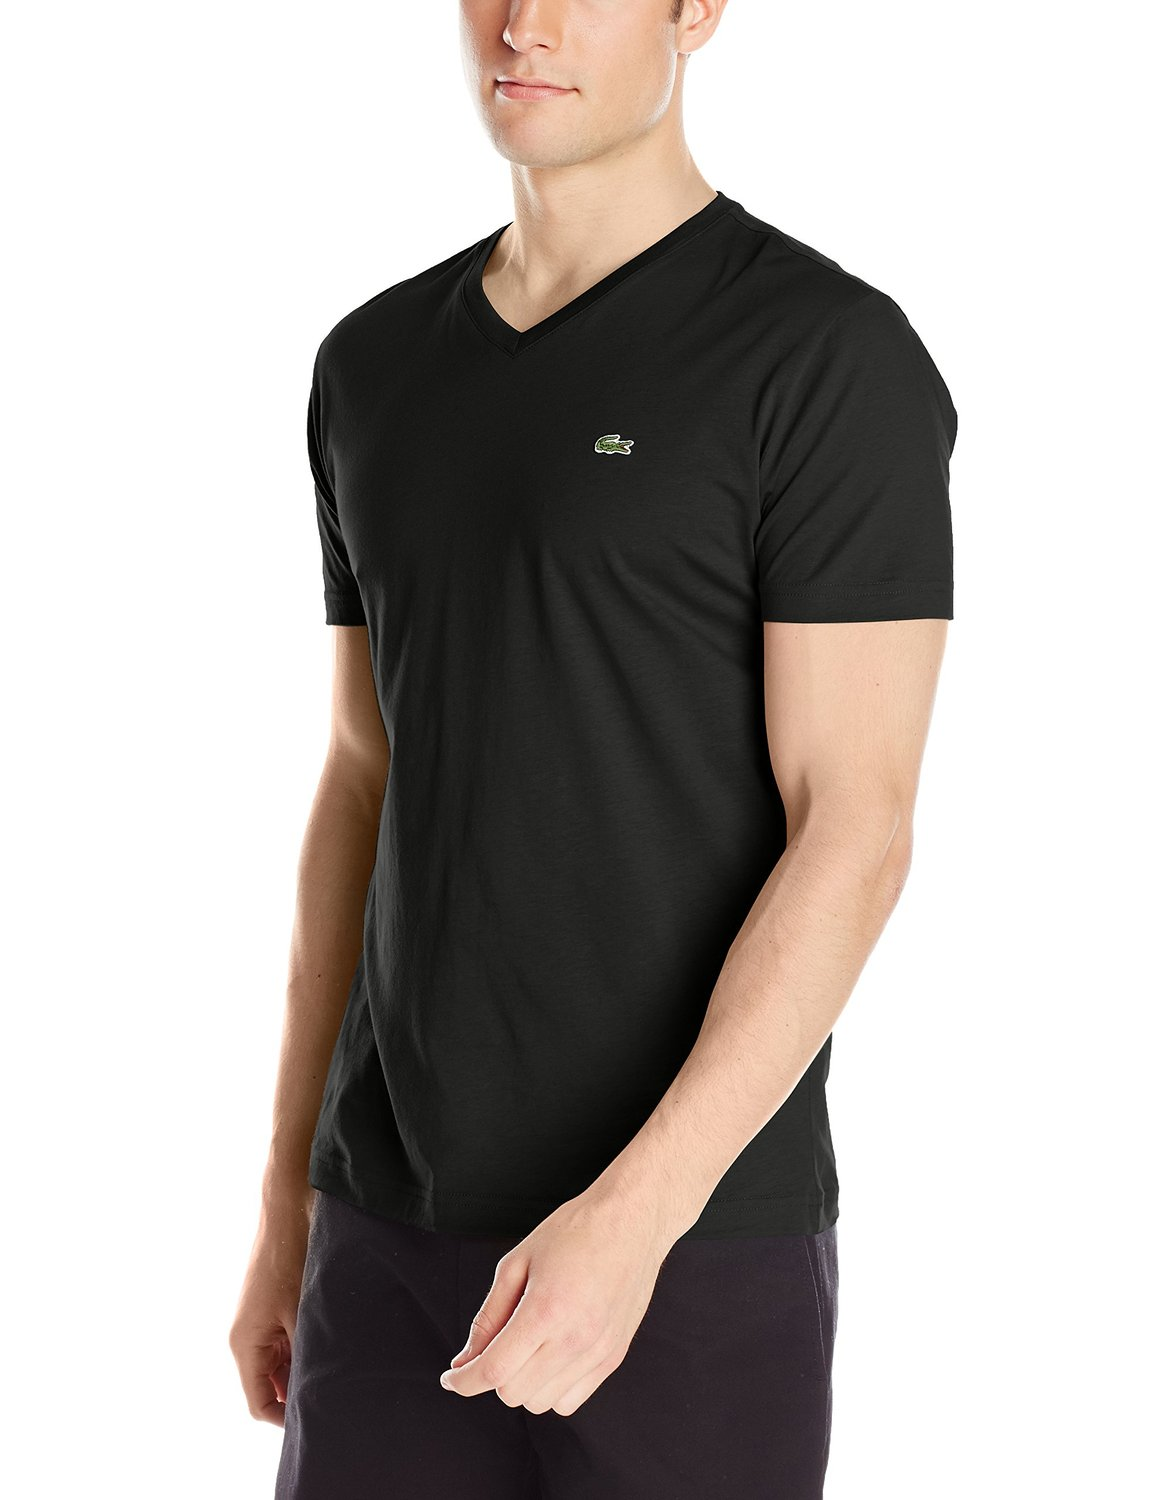 lacoste men 39 s short sleeve pima cotton v neck t shirt ebay. Black Bedroom Furniture Sets. Home Design Ideas